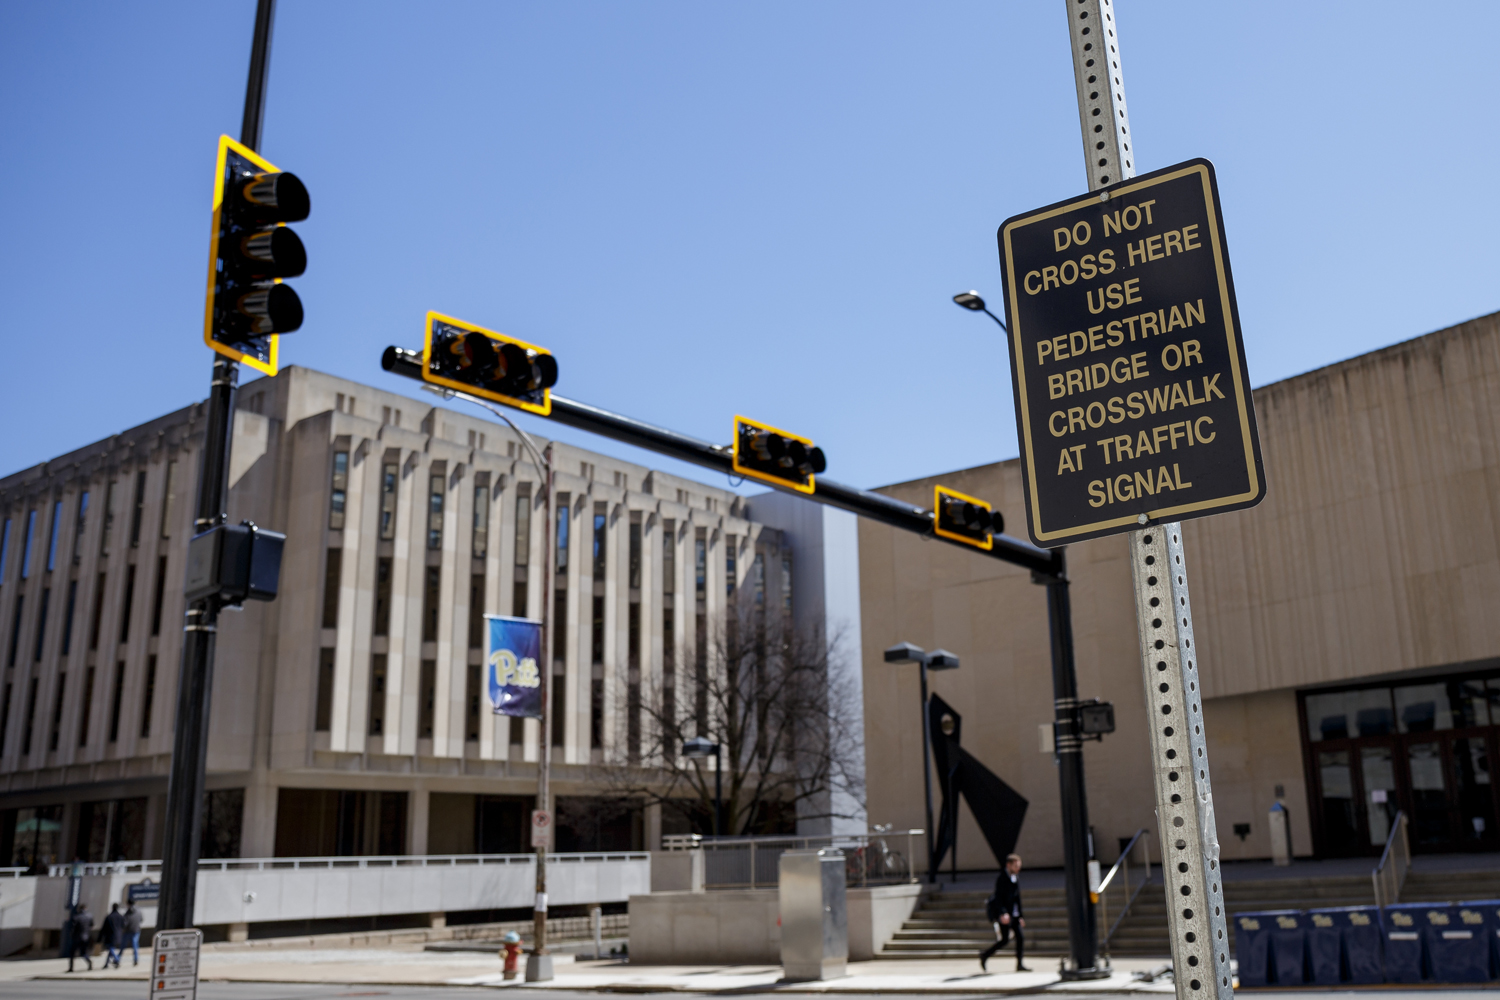 The crosswalk created on Forbes Ave. outside of David Lawrence Hall is expected to be fully operational by the end of the week, according to Pitt Police.